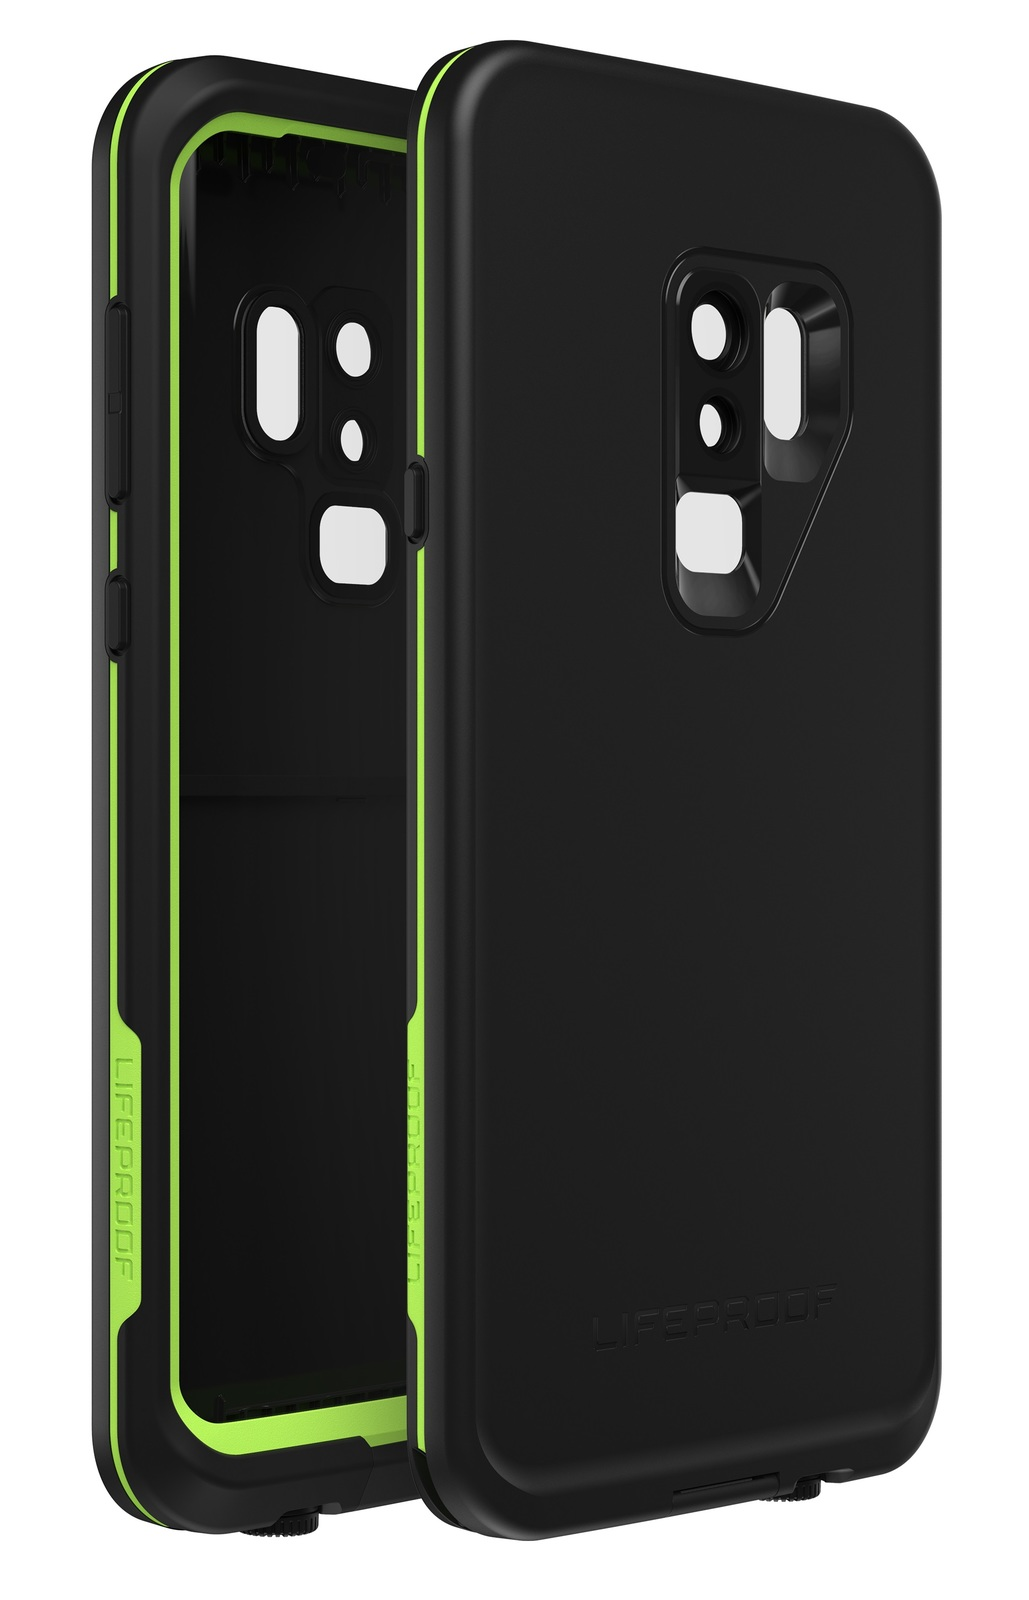 huge selection of 70fad c881e LifeProof: Fre Case for Samsung GS9+ - Black Lime